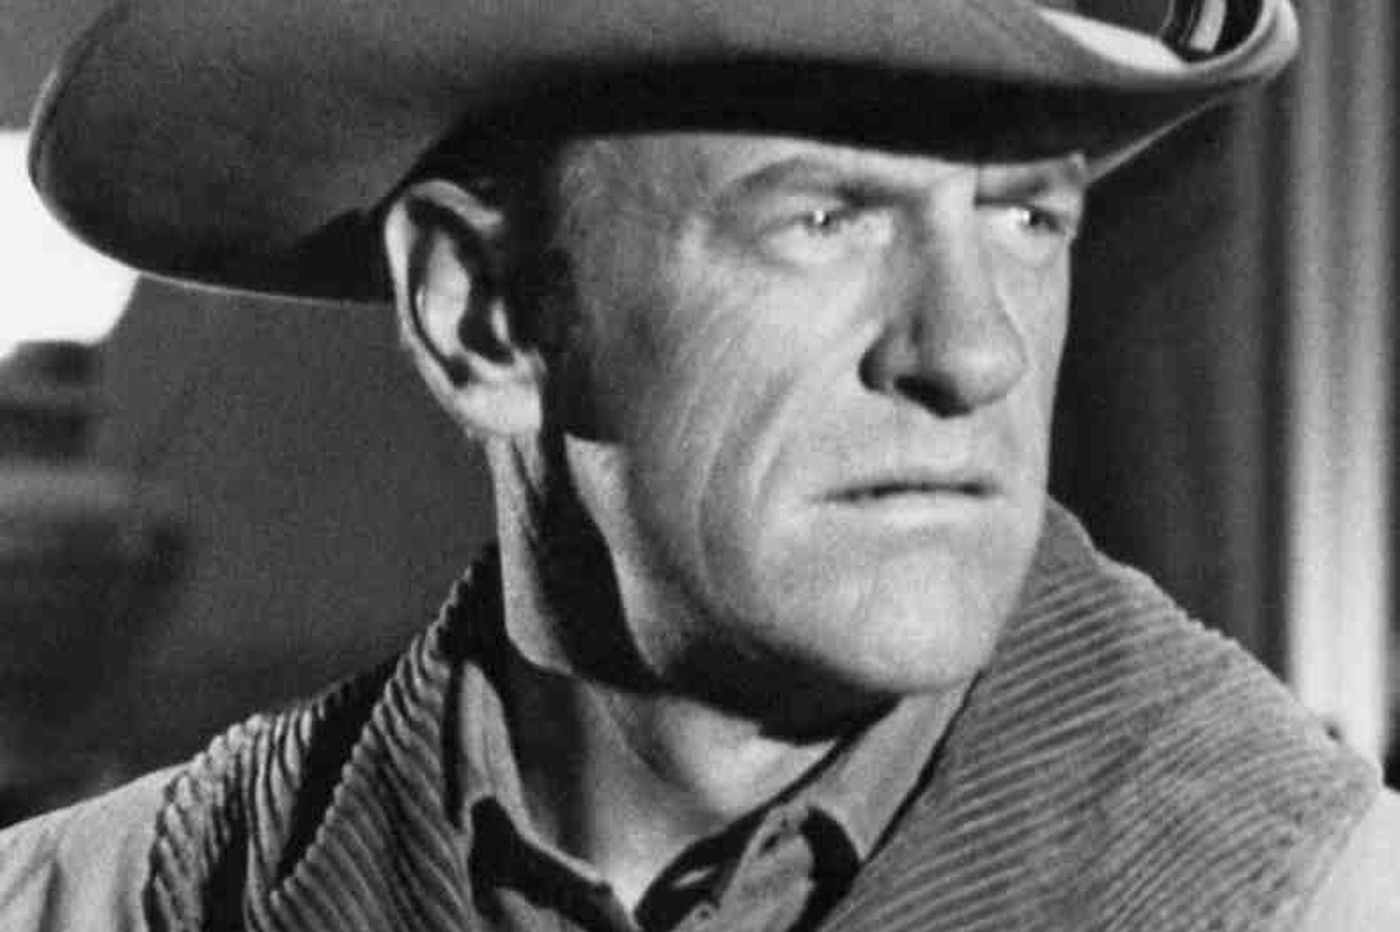 James Arness, 'Gunsmoke' star